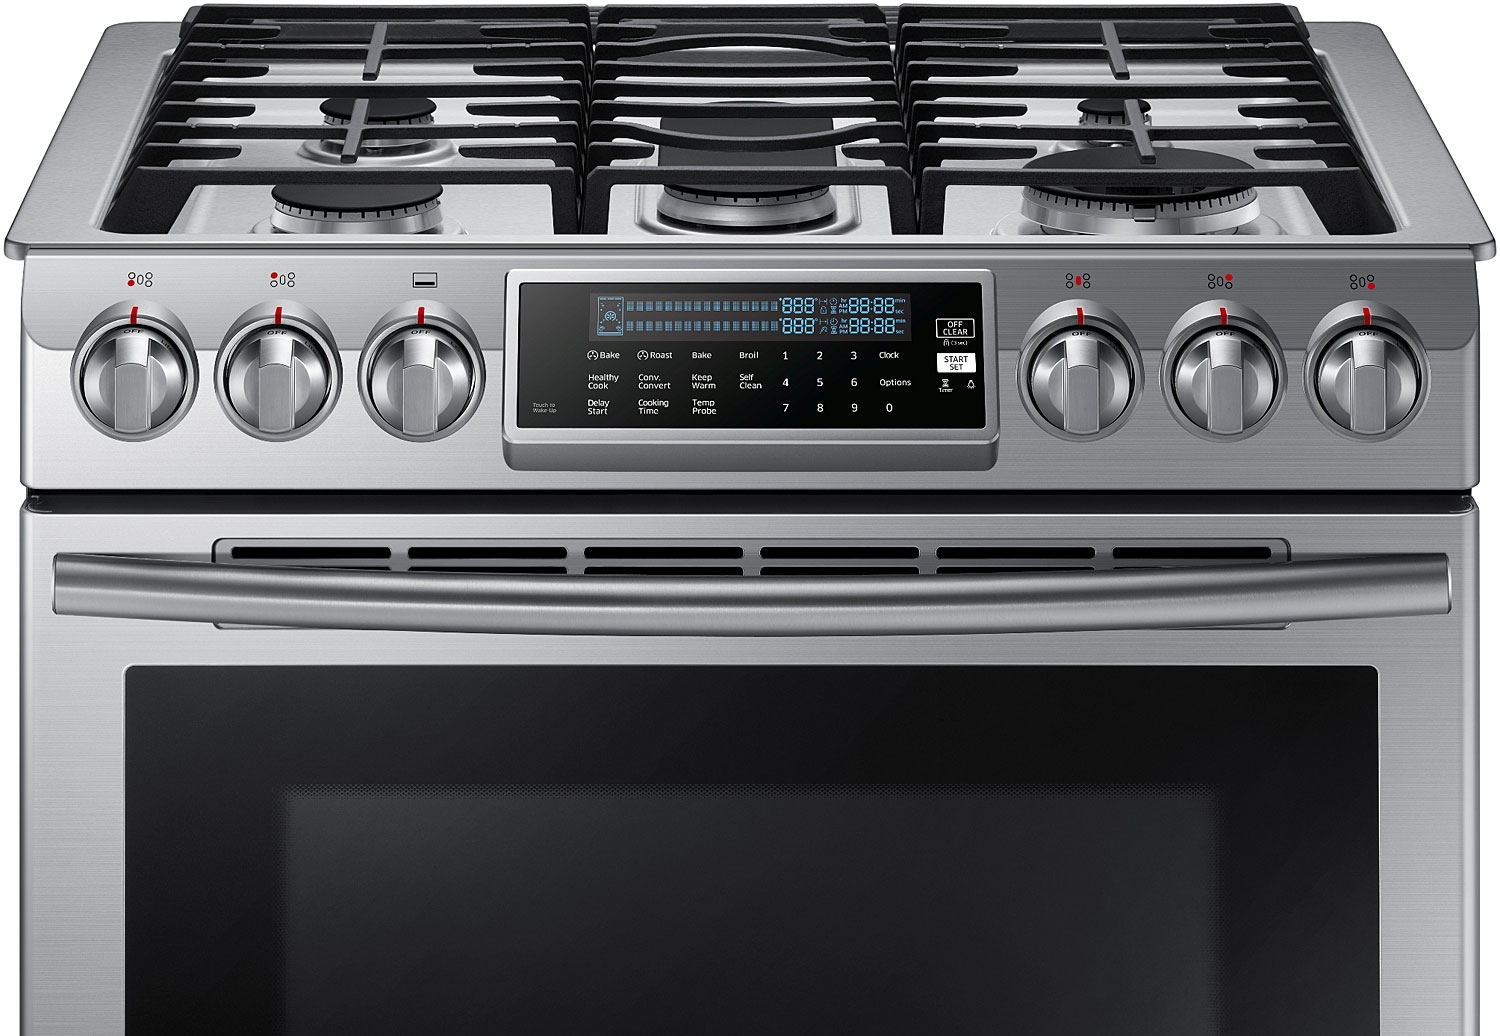 Gas Stainless Steel Cooktop Samsung Slide In Convection Gas Range Nx58h9500ws